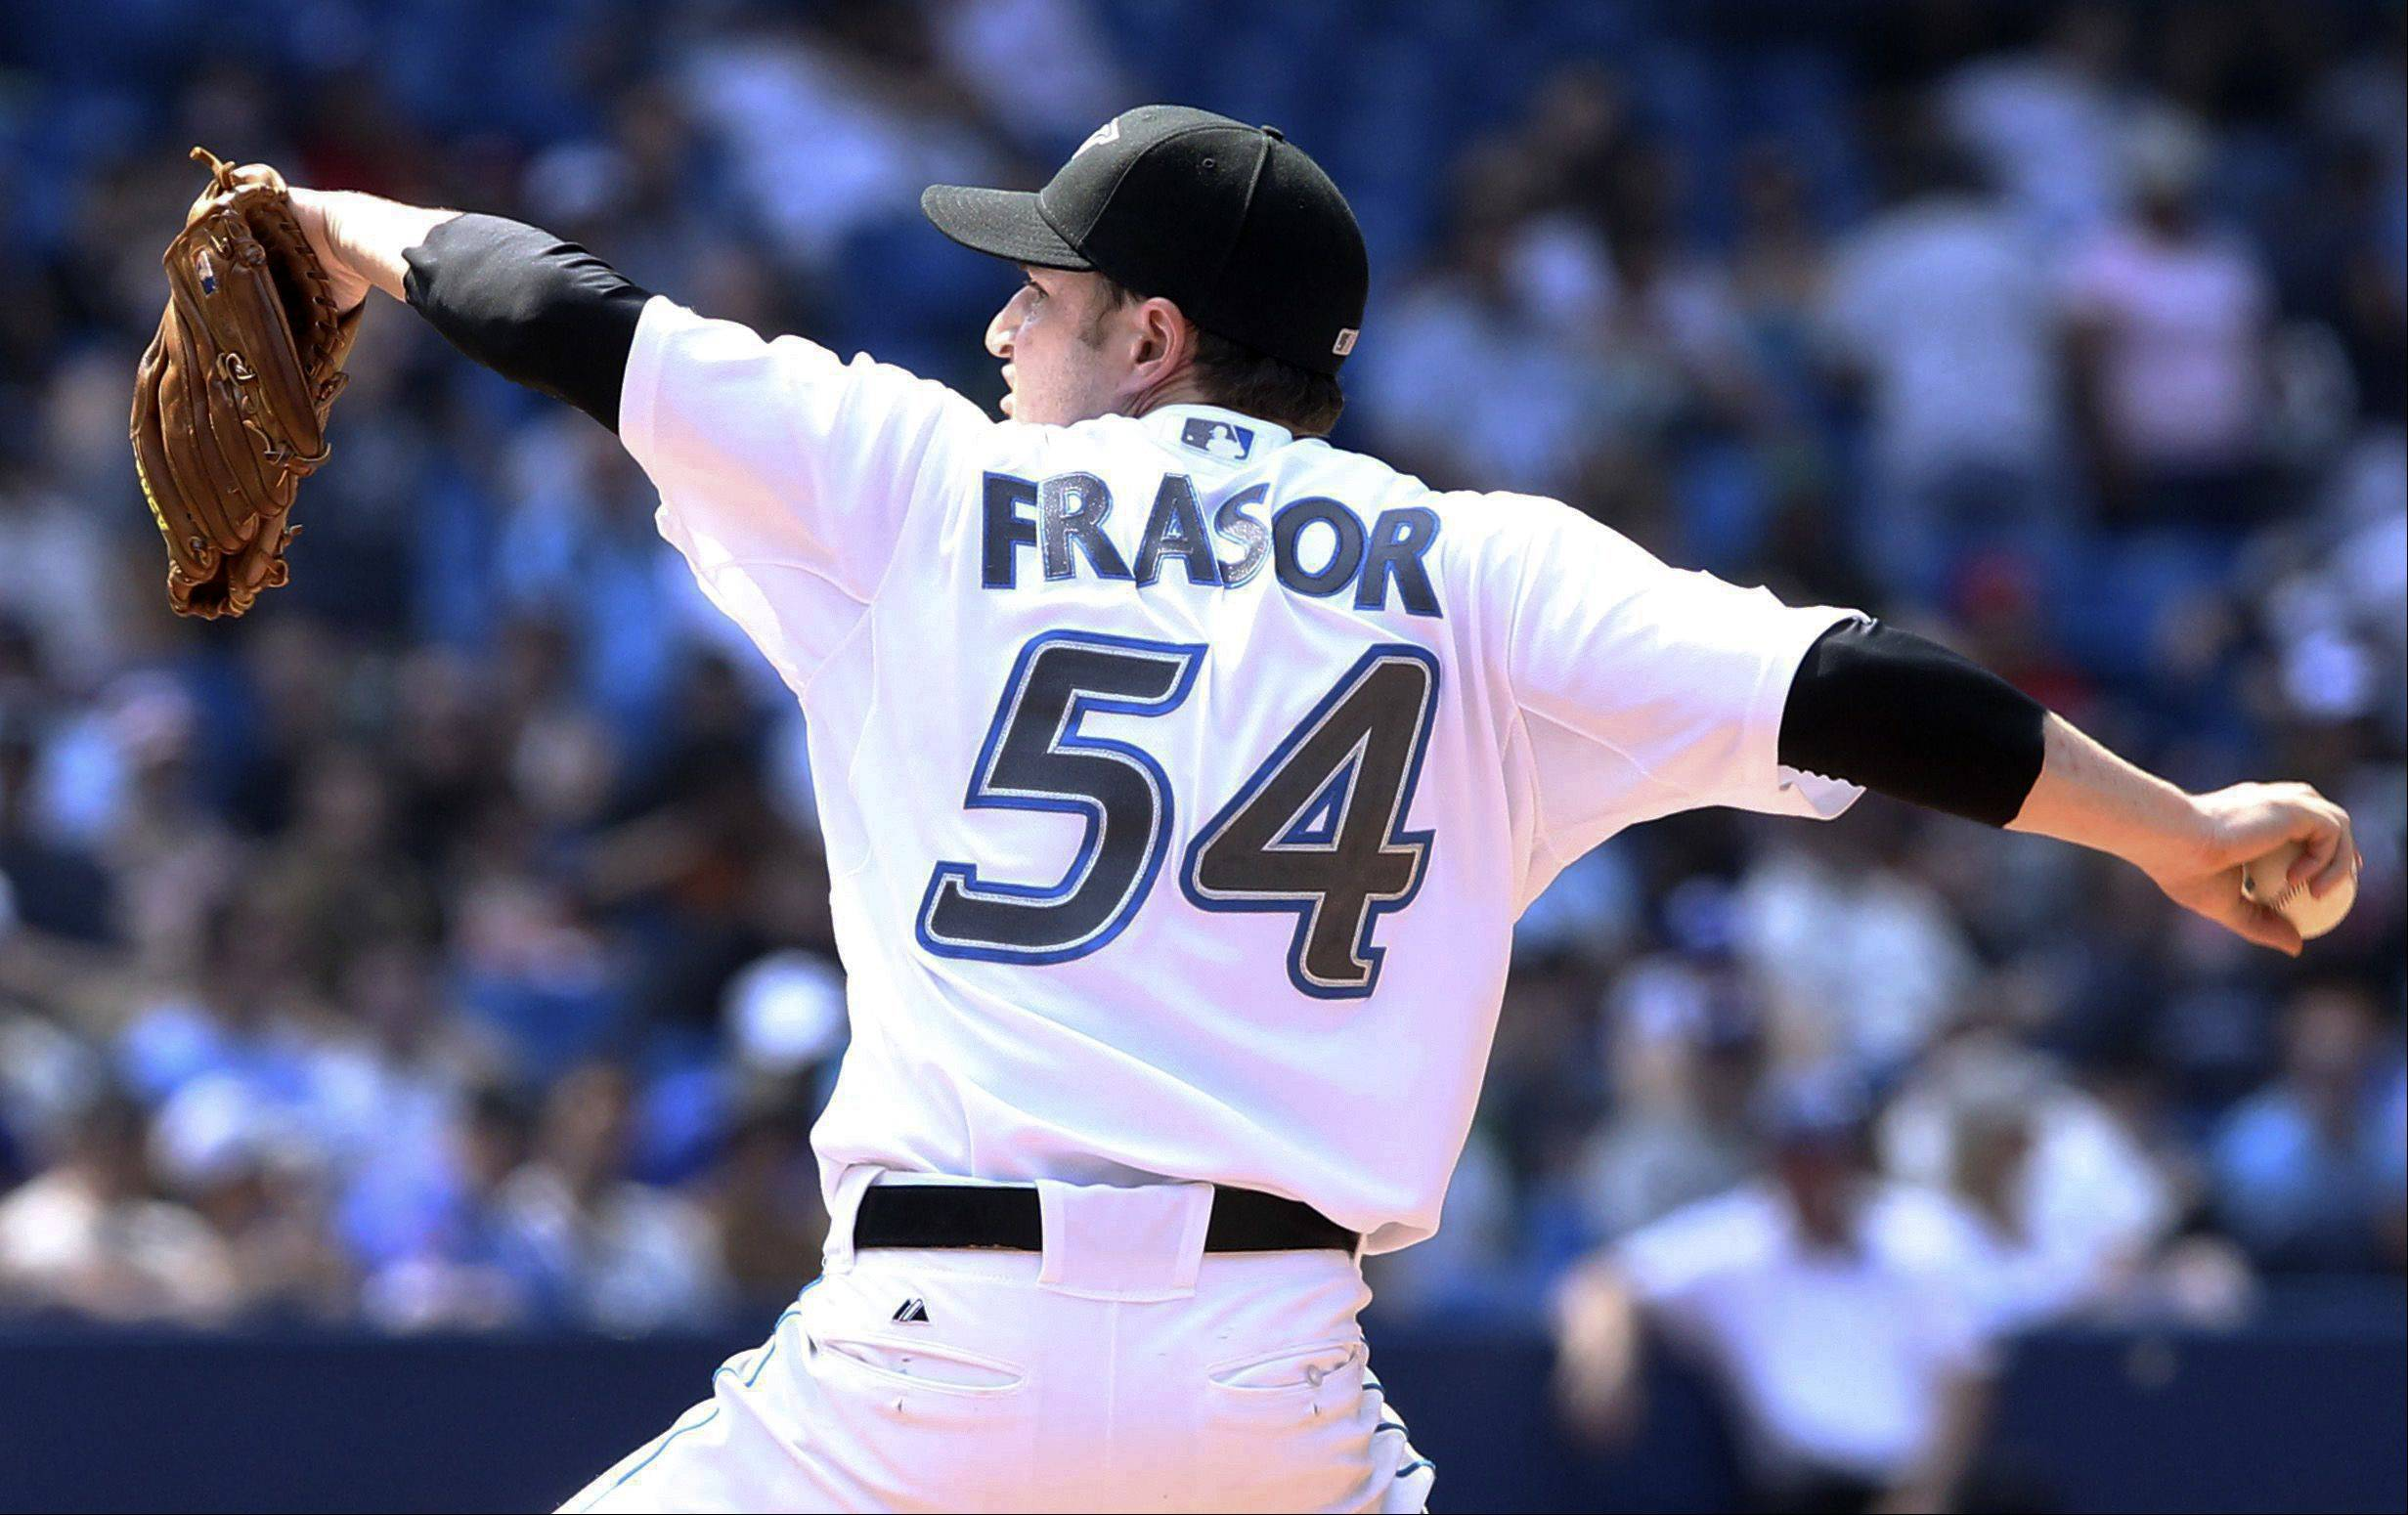 Sox swap Jackson, Teahen for 2 Jays pitchers